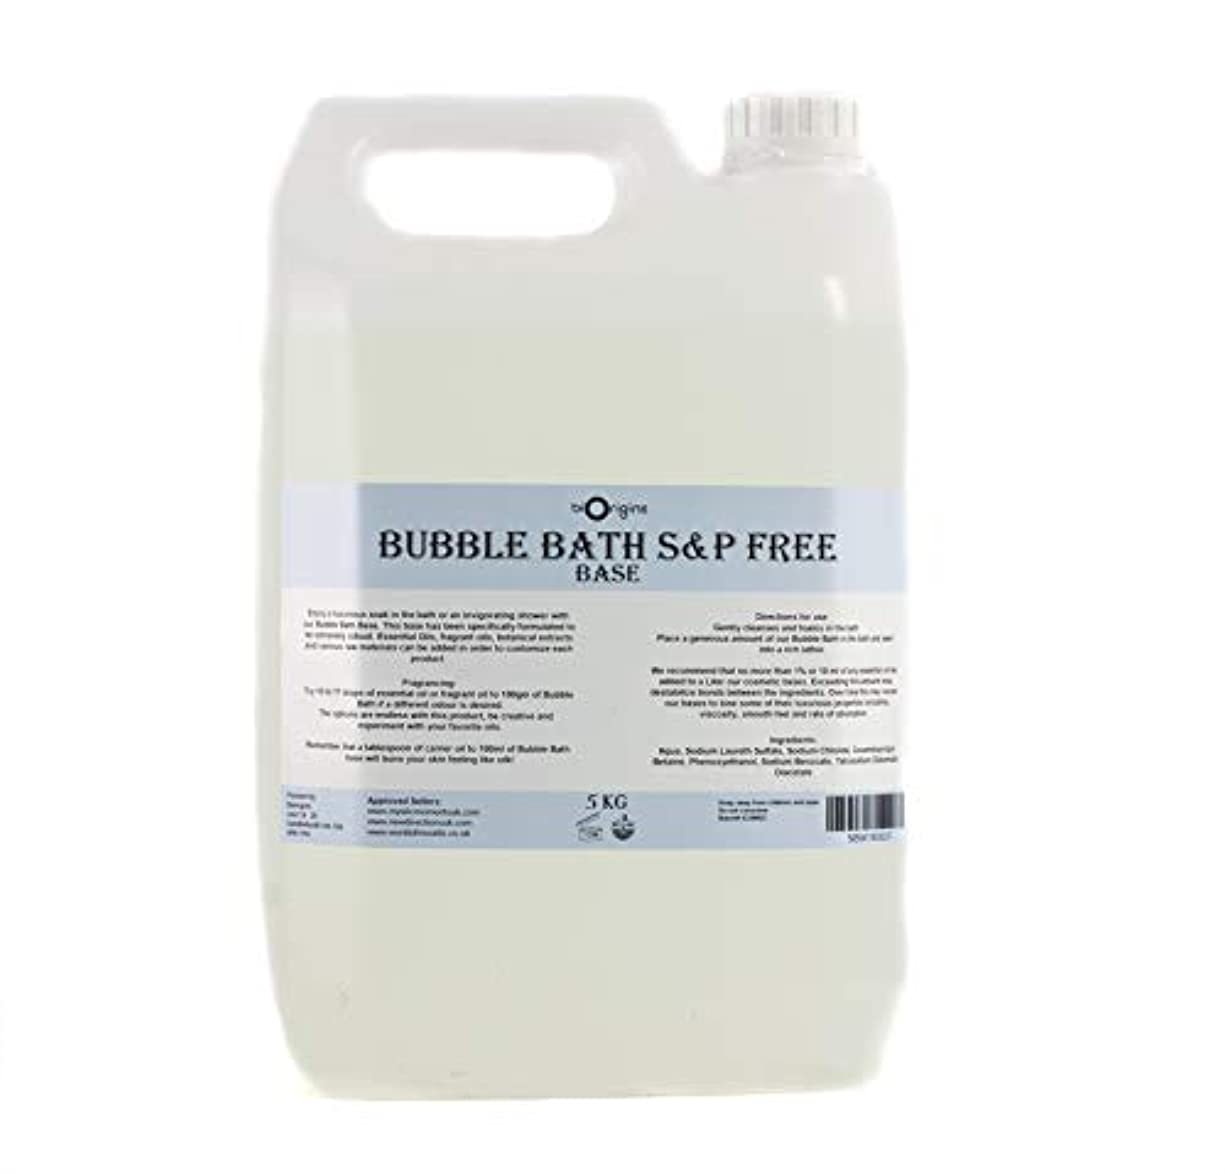 増幅ベギン課税Bubble Bath Base - SLS & Paraben Free - 5Kg